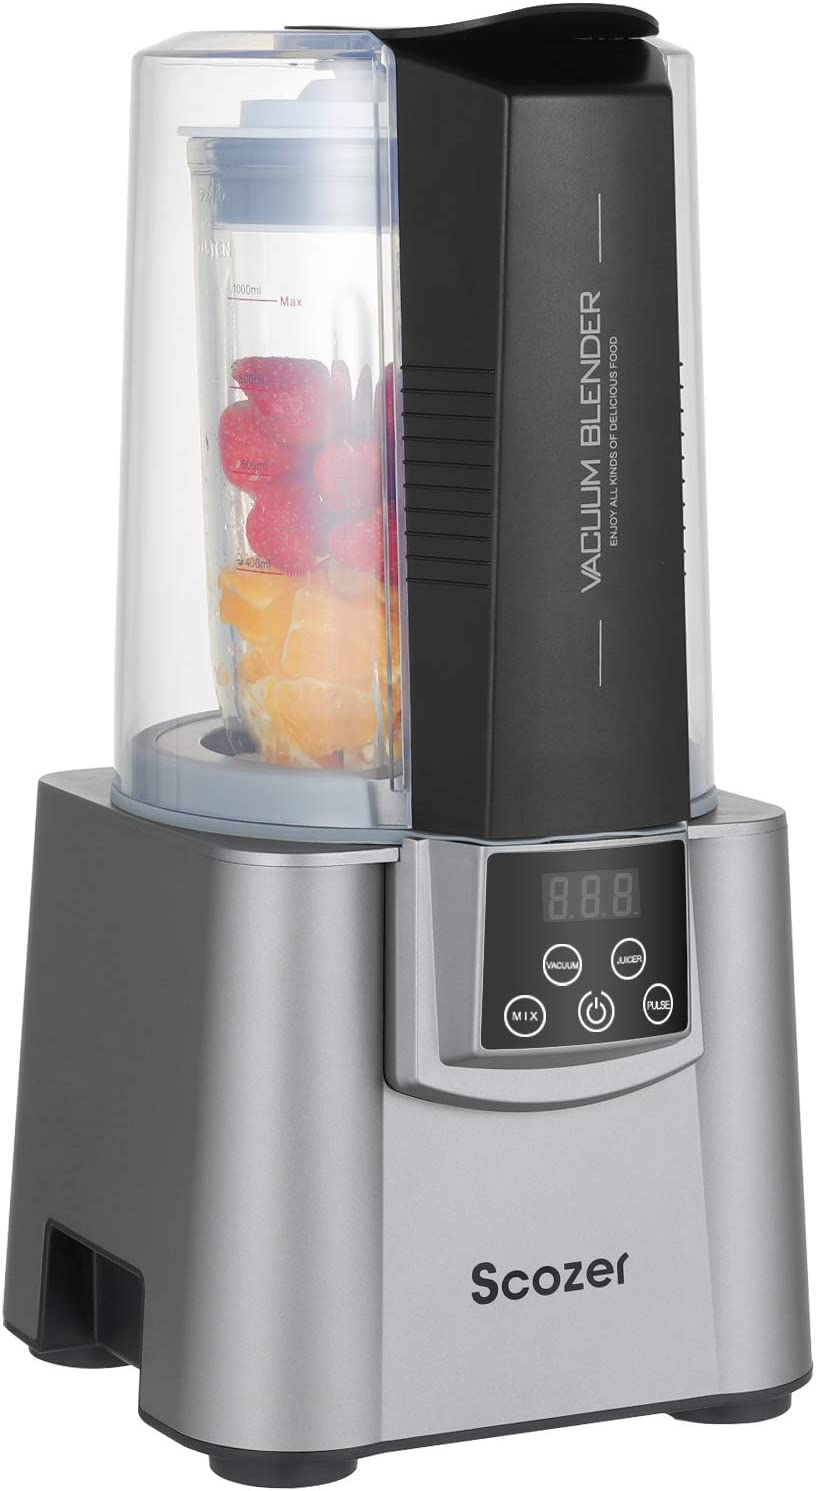 Vacuum Blender, Scozer Countertop Kitchen Blender, BPA Free Quiet Blender, Virtually No Foam, 500W Professional Countertop Blender, 21000RMP High Speed Kitchen Smoothie Maker